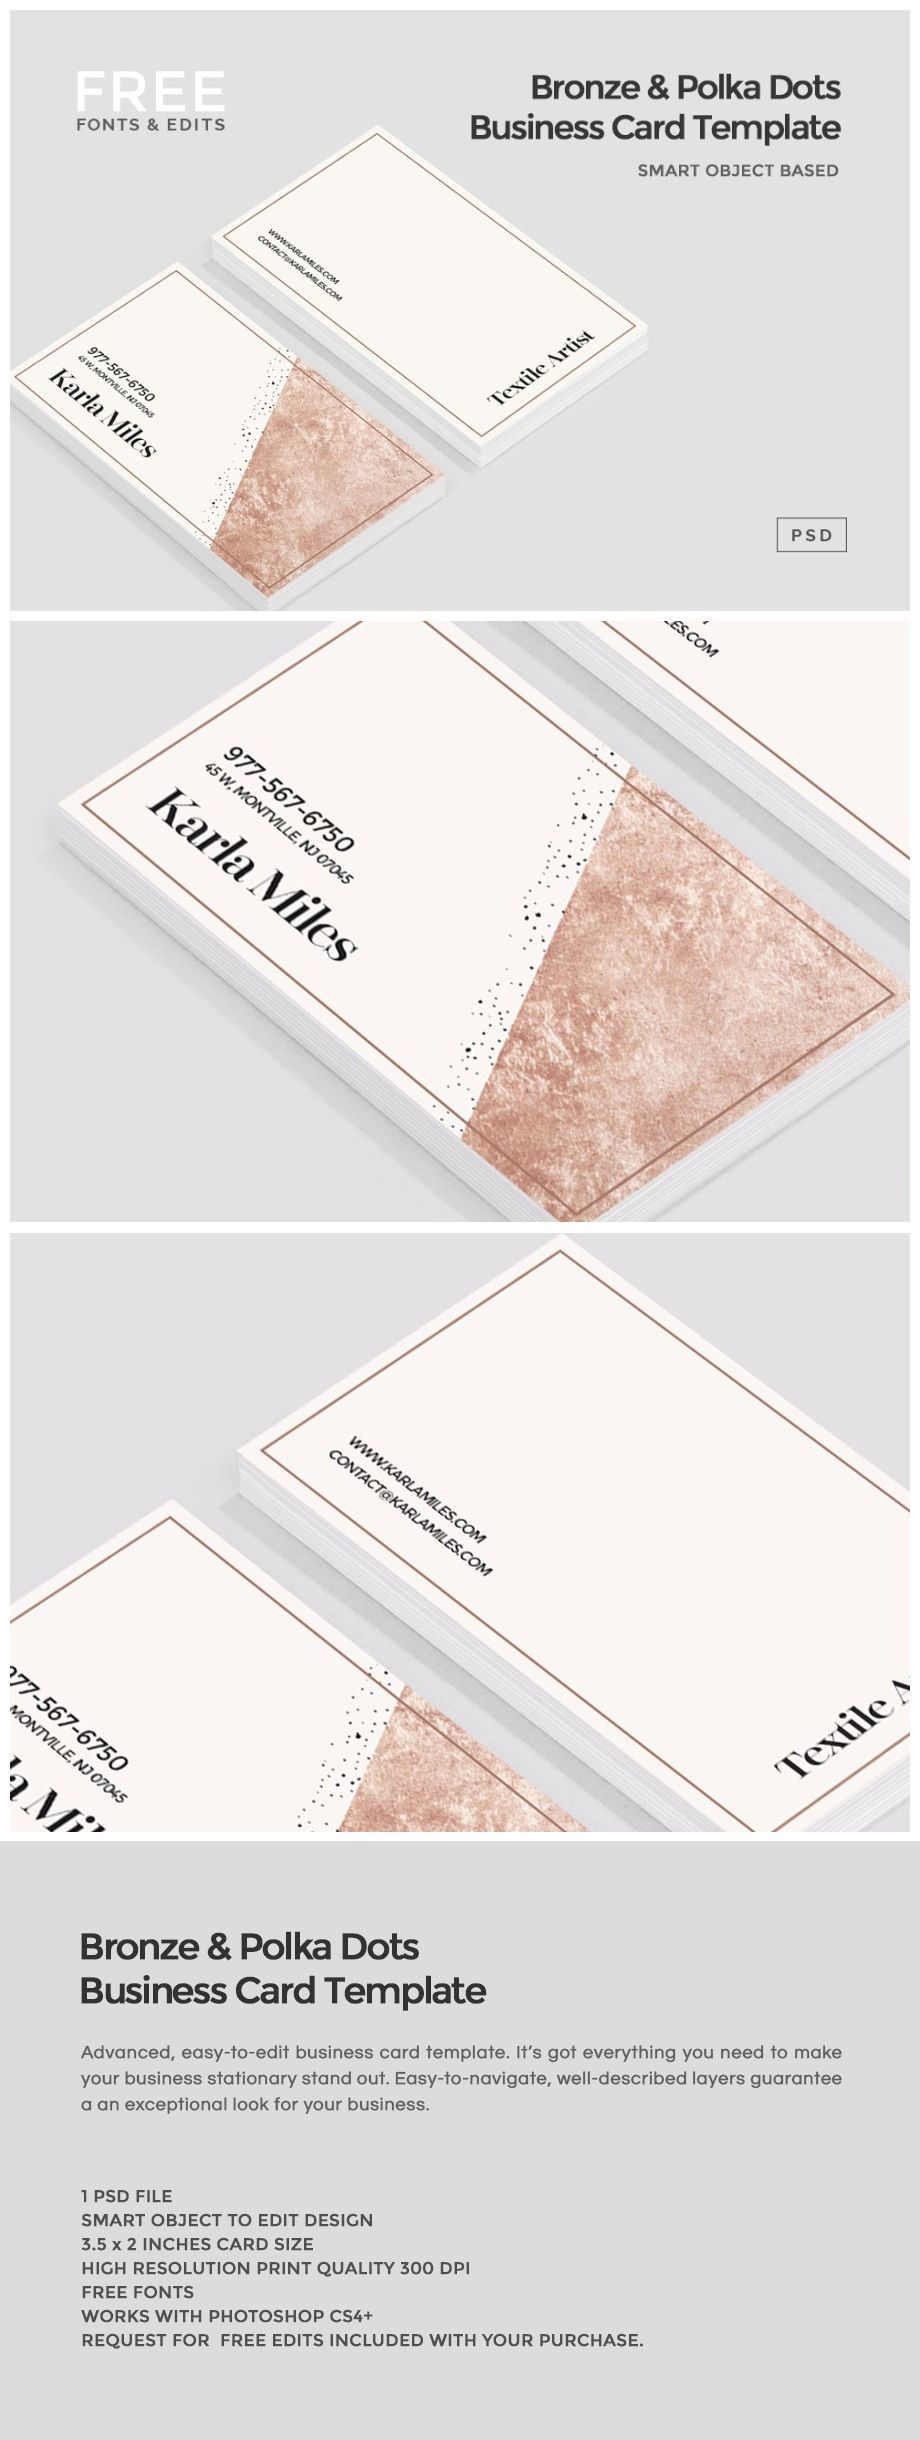 Bronze & Polka Dots Business Card Size: 3.5 x 2 Inches .PSD with ...